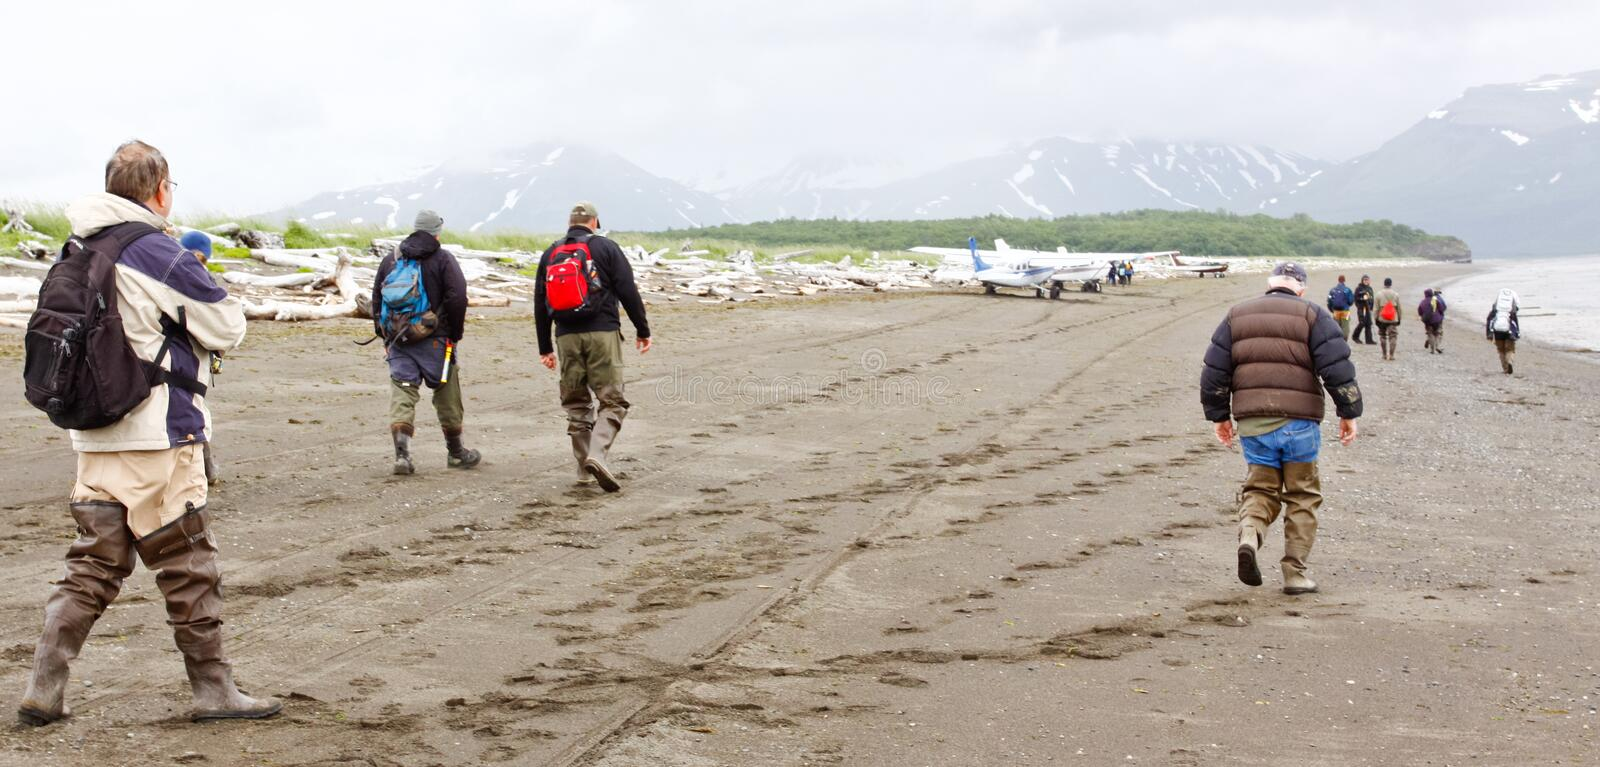 Alaska Bear Viewing Group Planes Hallo Bay. A group of nature lovers and photographers, located Hallo Bay in Katmai National Park in Alaska, head back along the stock photography